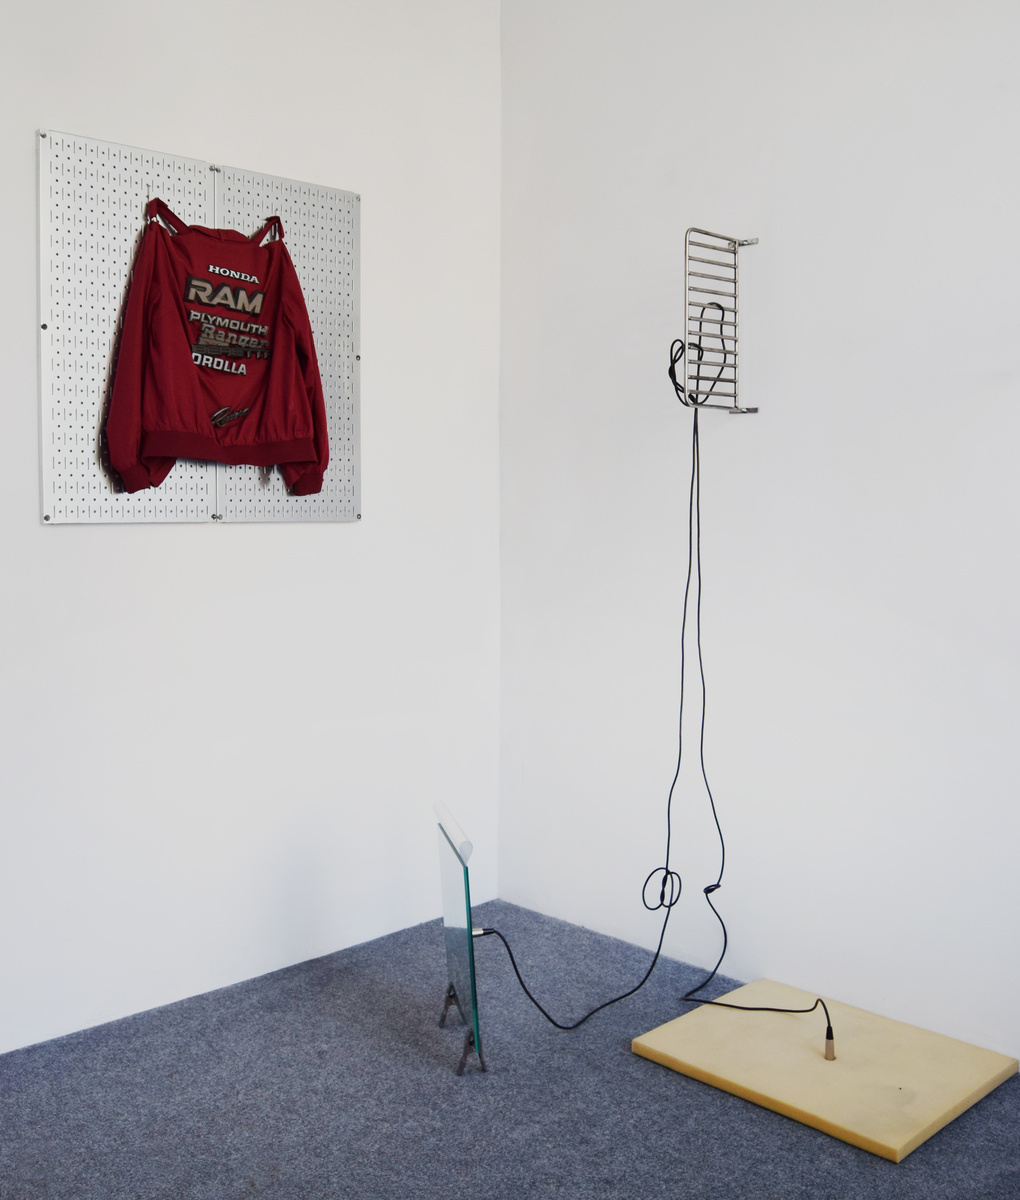 Tearing Up The Street Nikita Gale On Extending Logic Of Electrical Wiring Reassurance With Diagram Diy Extended Play 2018 Install View Courtesy Artist And 56 Henry New York